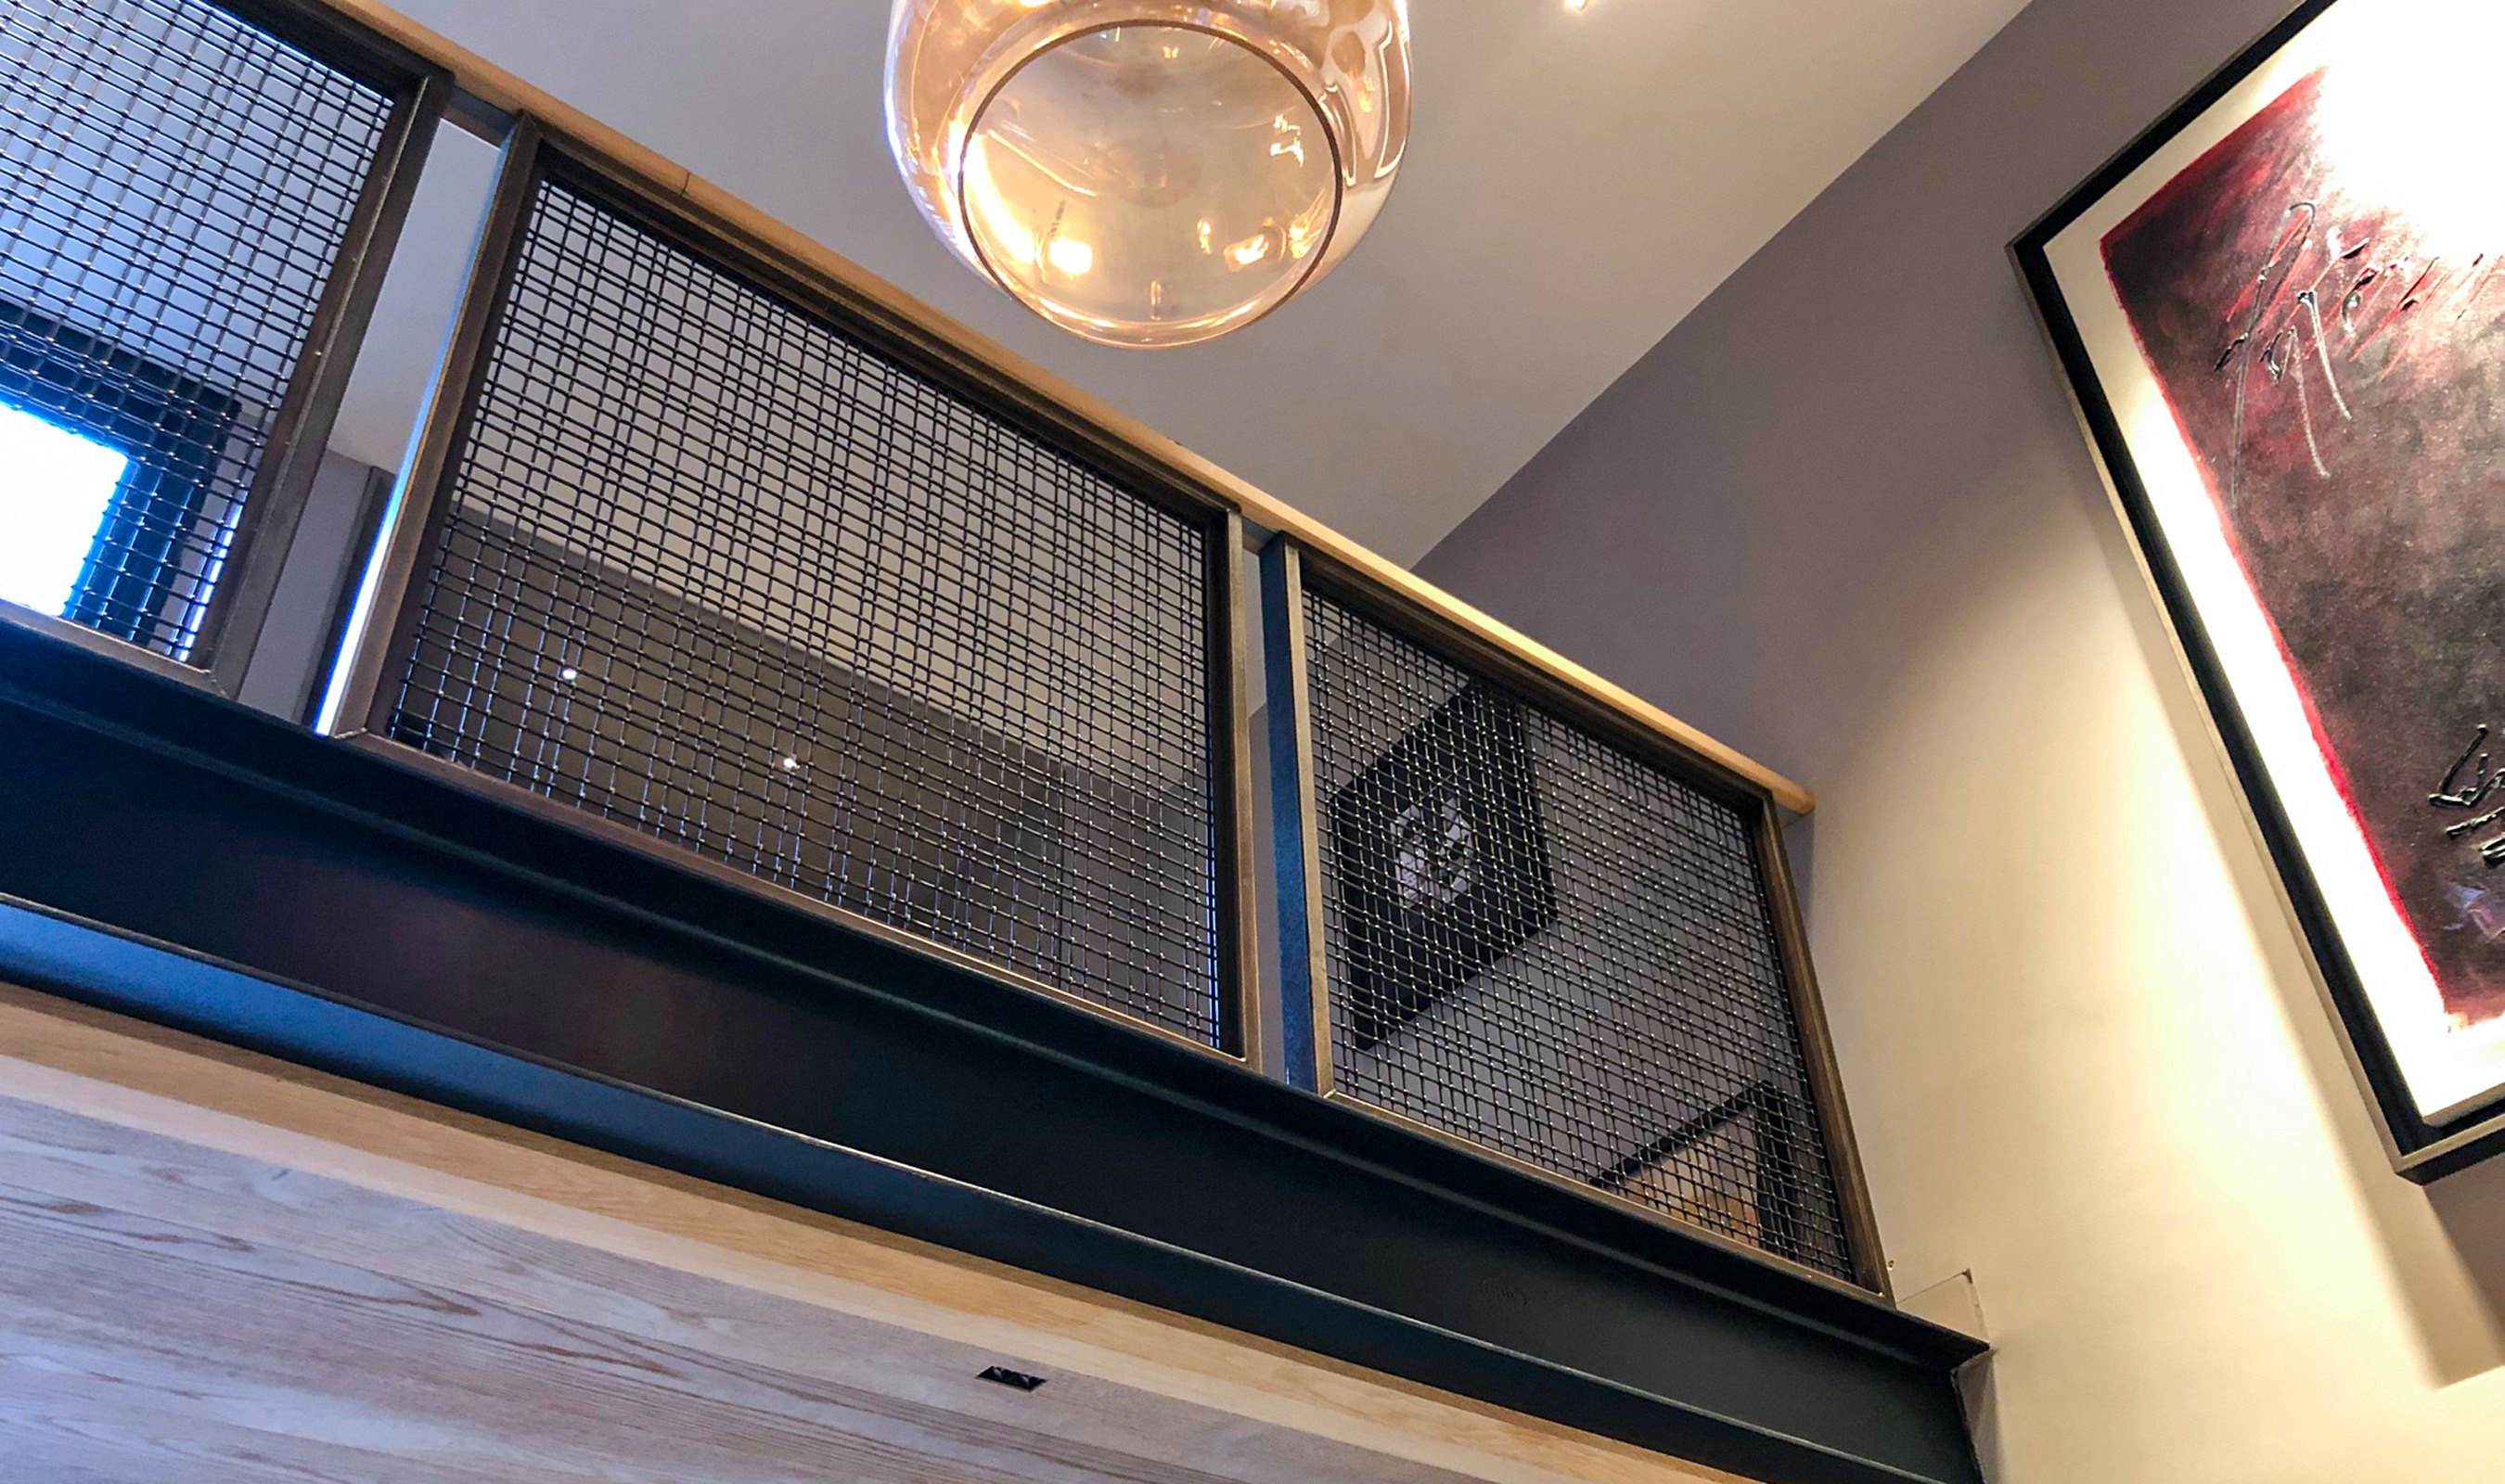 The SJD-2 wire mesh pattern is unique, appearing almost never ending with it's extra large repeat pattern.